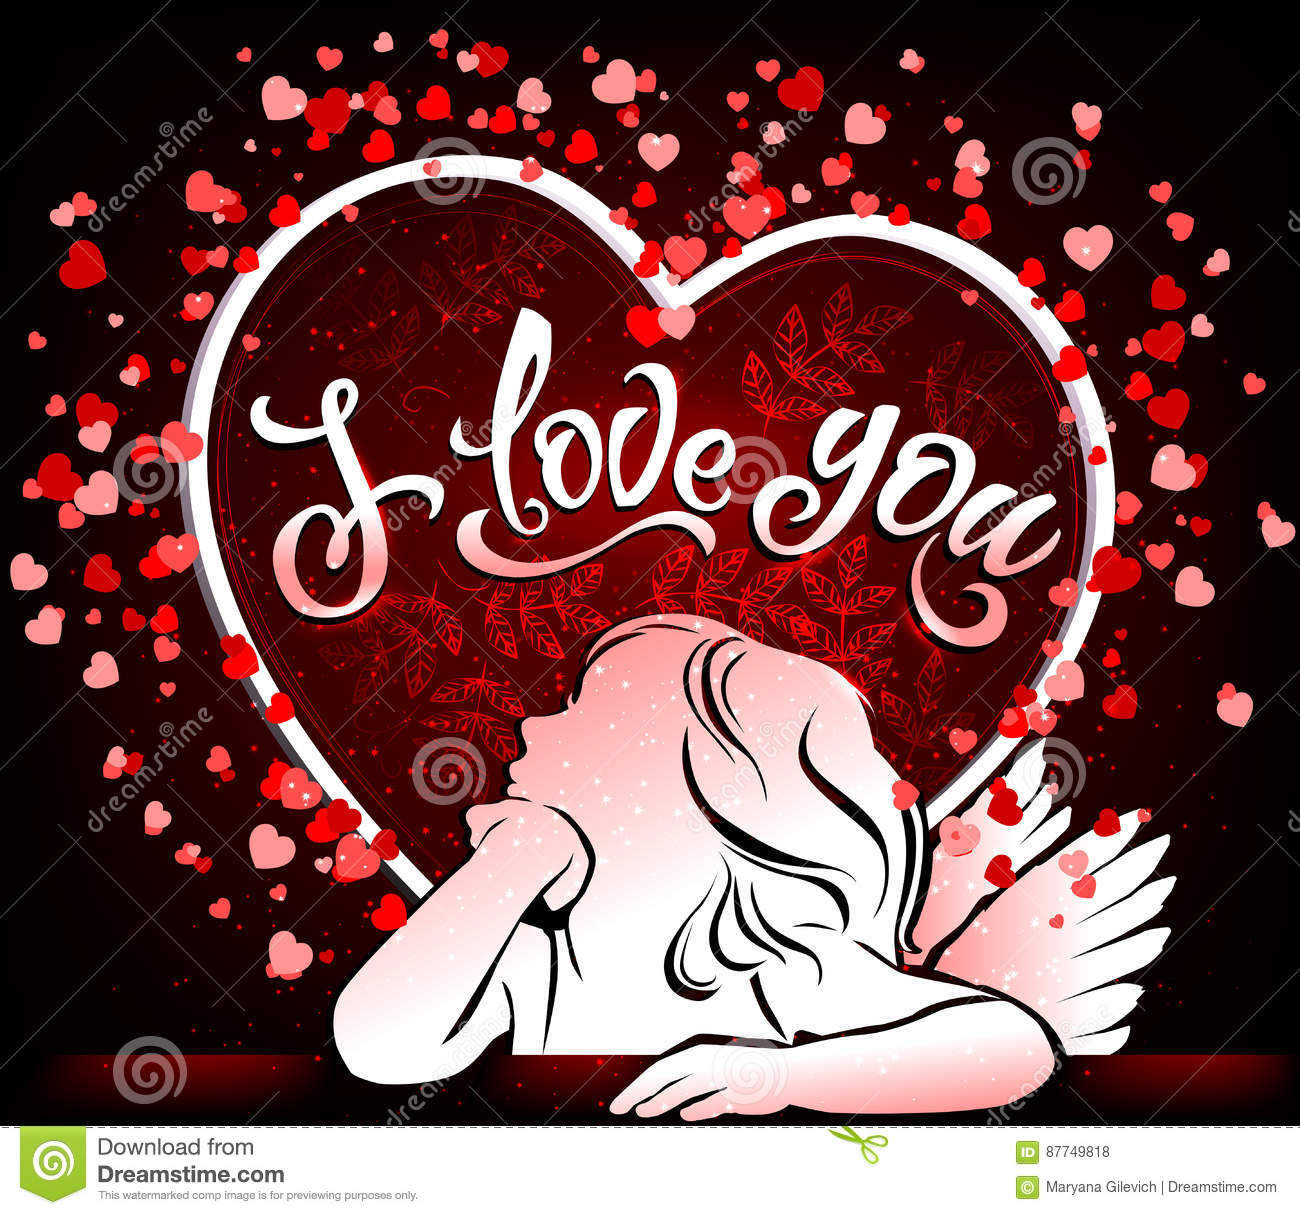 Love You Bilder Beautiful Card I Love You With Angel Stock Vector - Illustration Of Design, Heart: 87749818